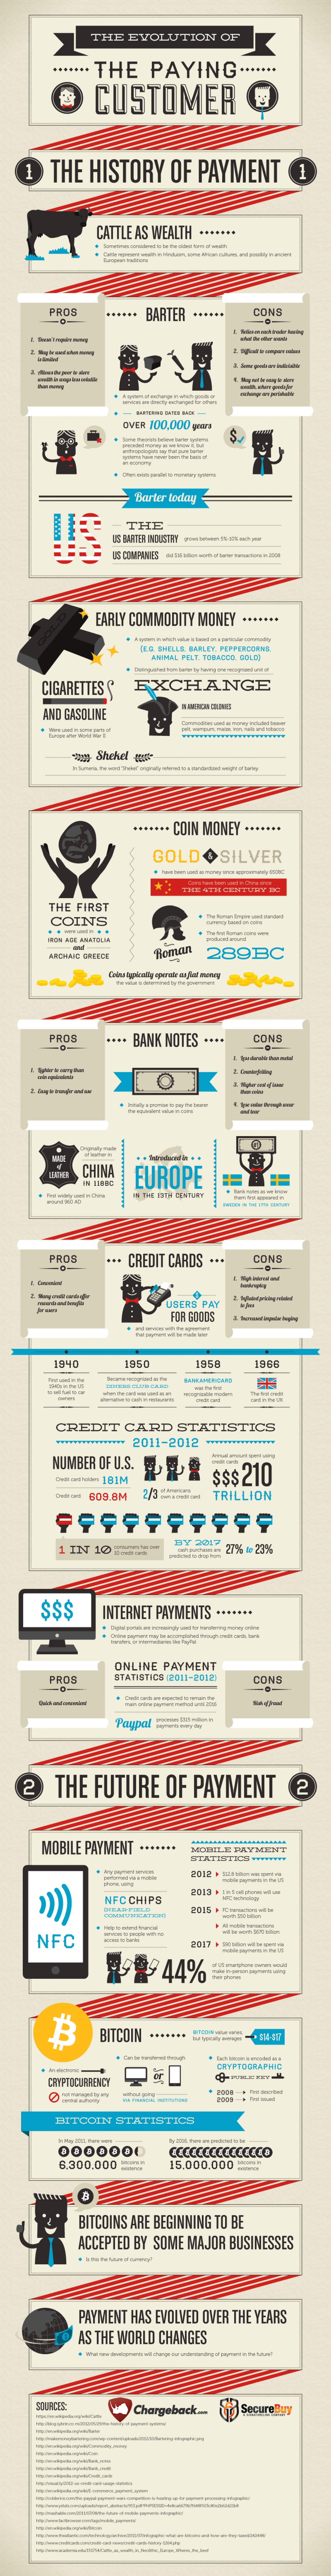 The Evolution of The Paying Customer Infographic